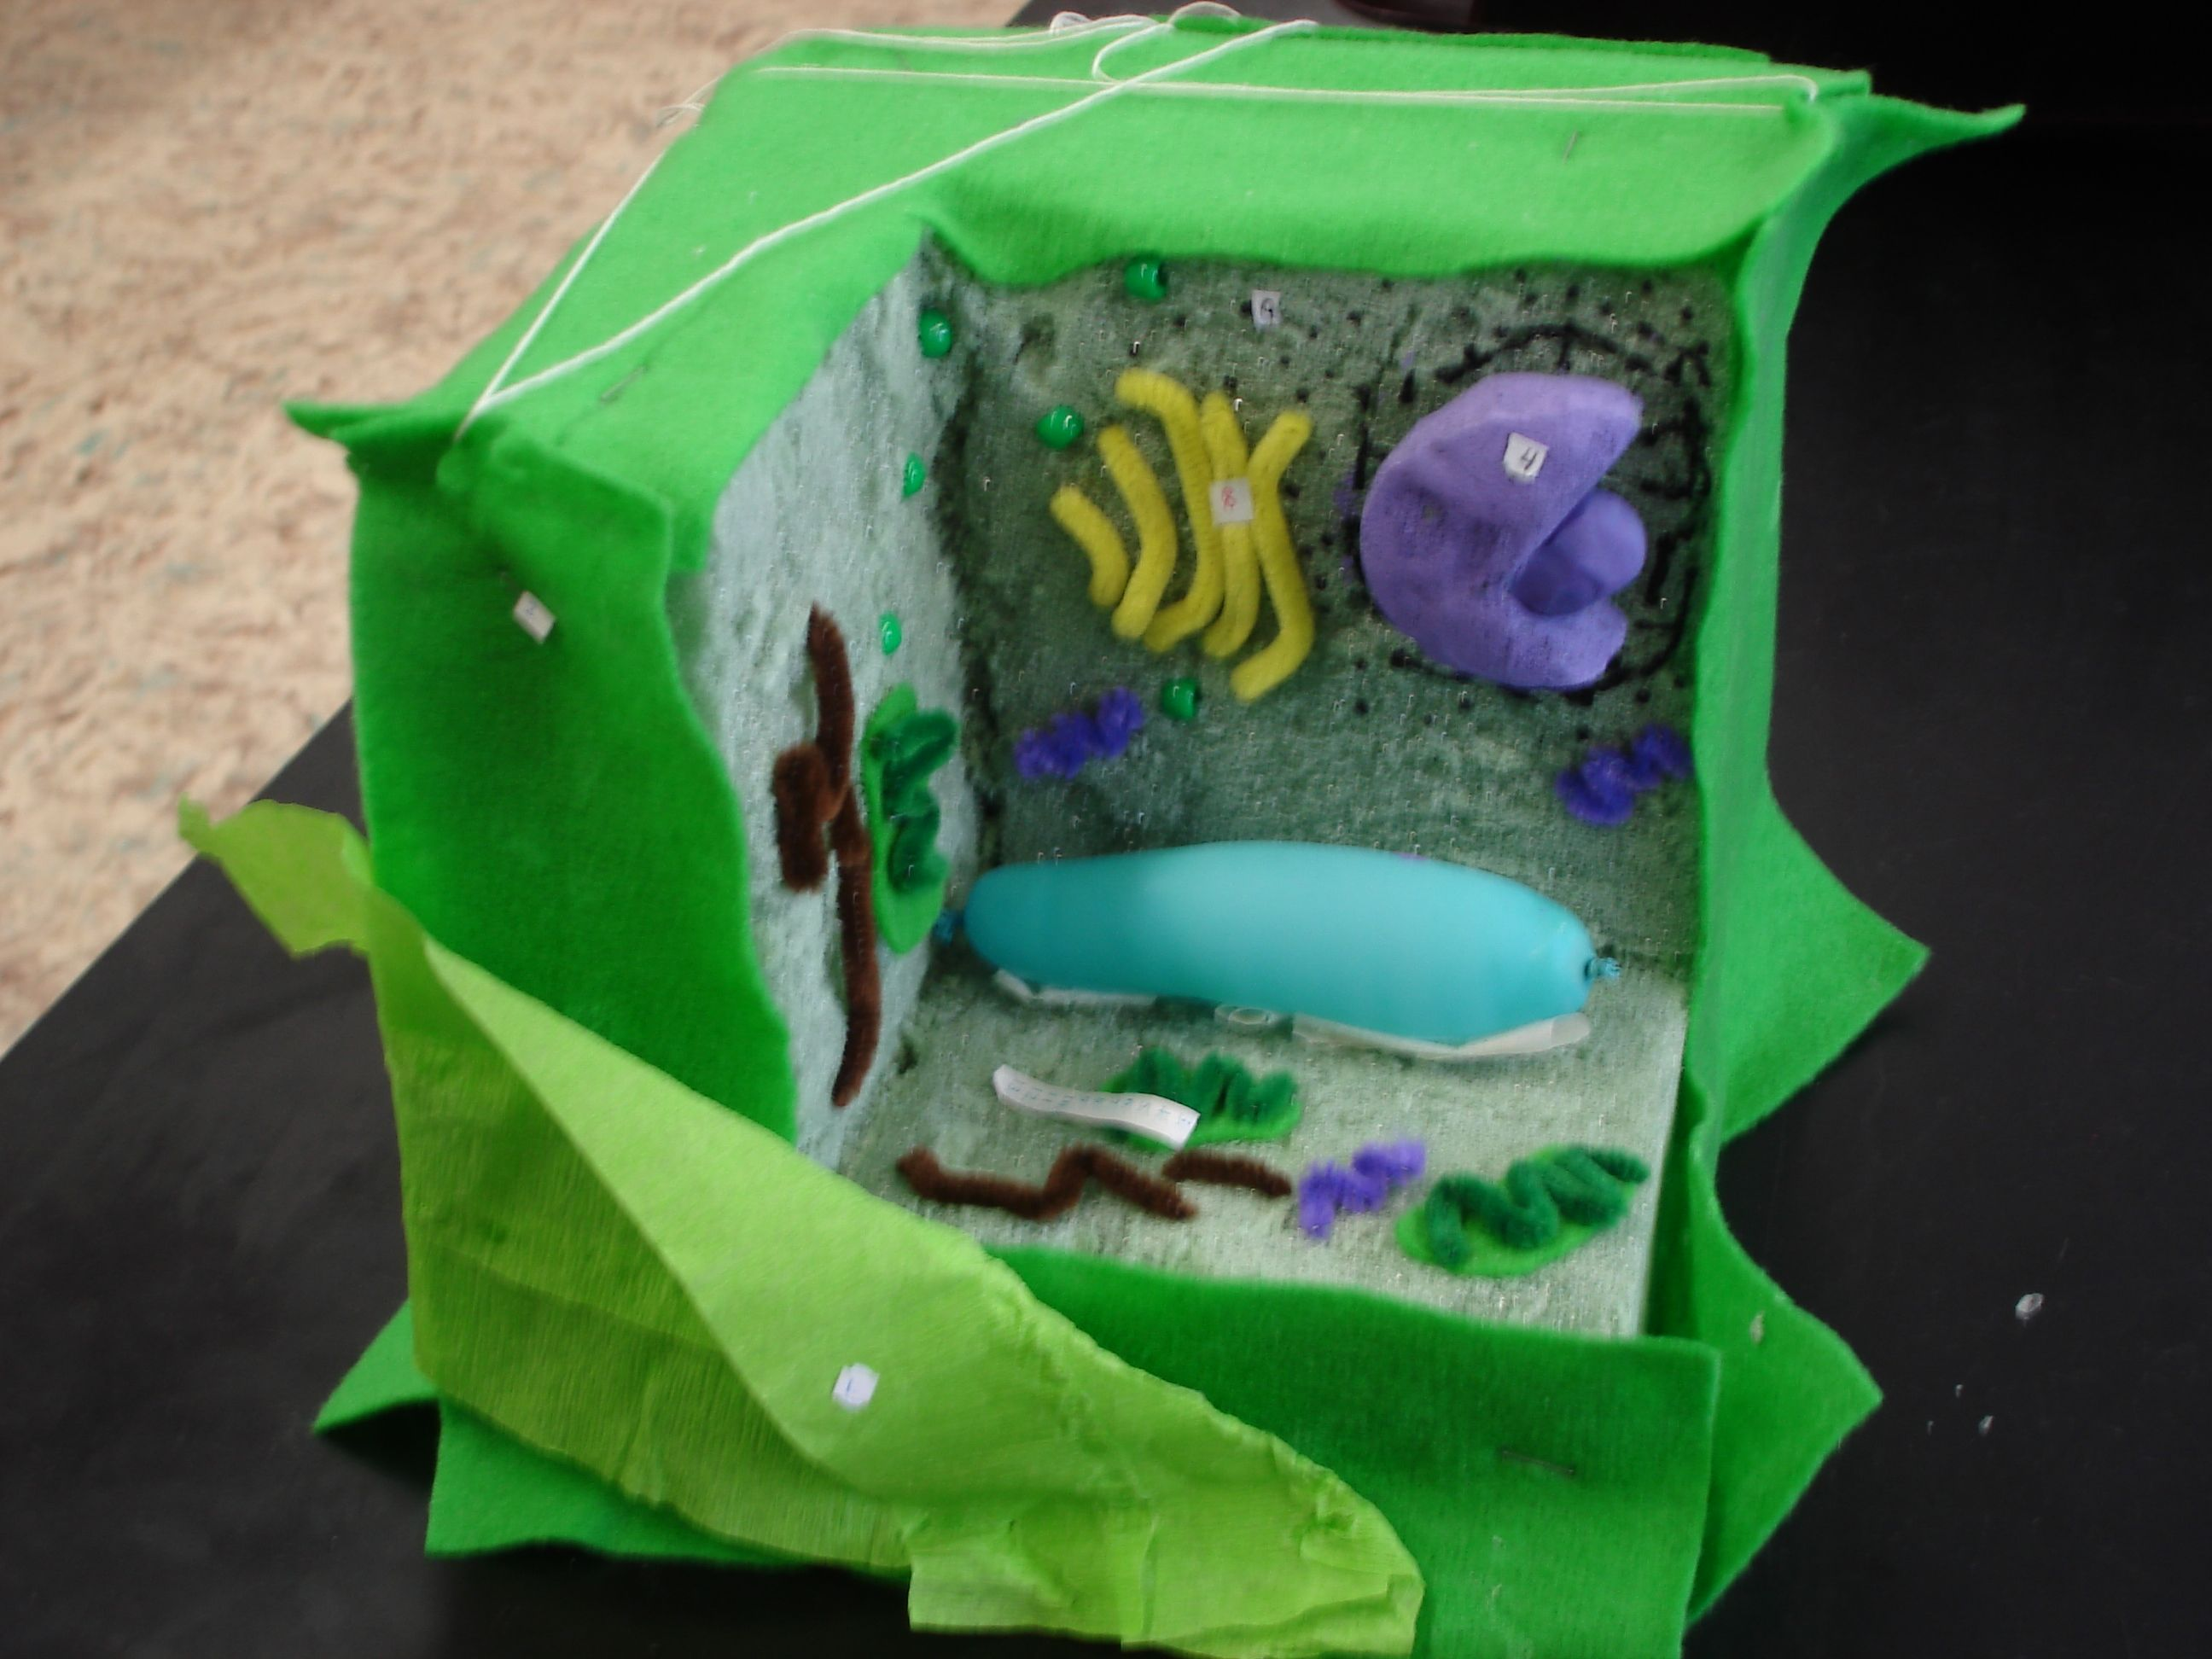 3d animal cell model, 3d plant cell model in a shoebox, 3d